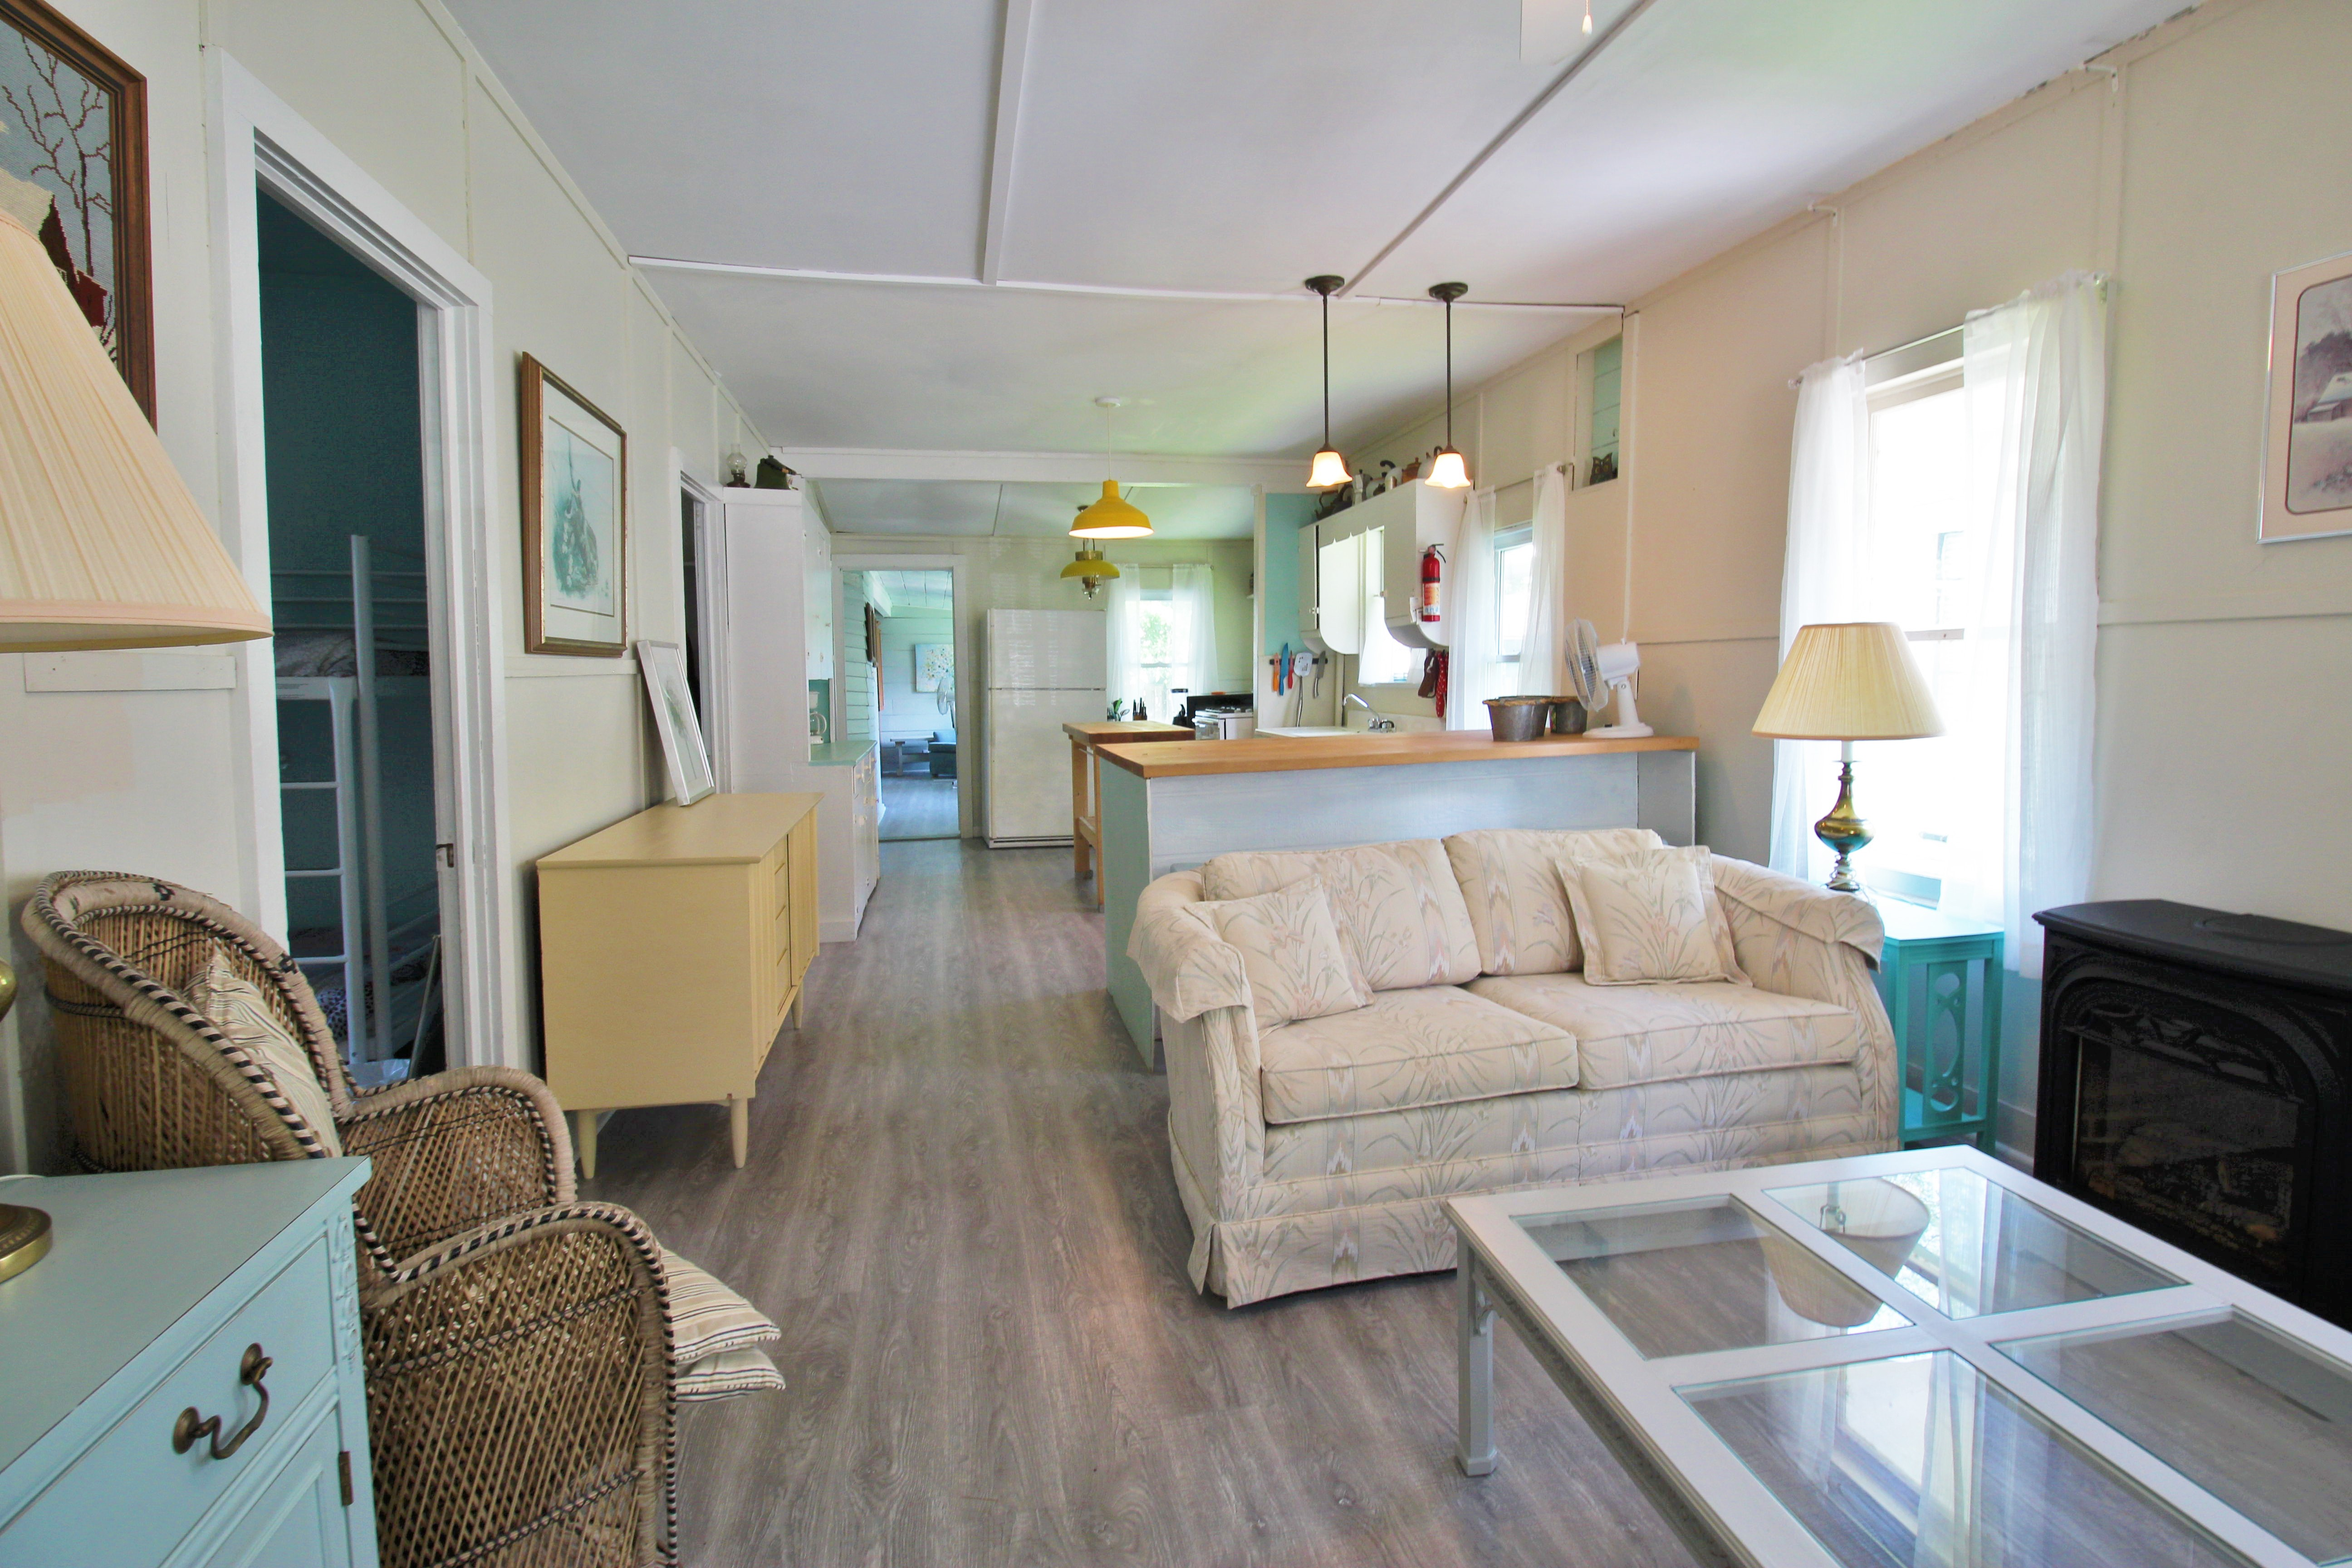 Crystal Beach Cottage Rentals - Bay Beach Bliss - kitchen & living room